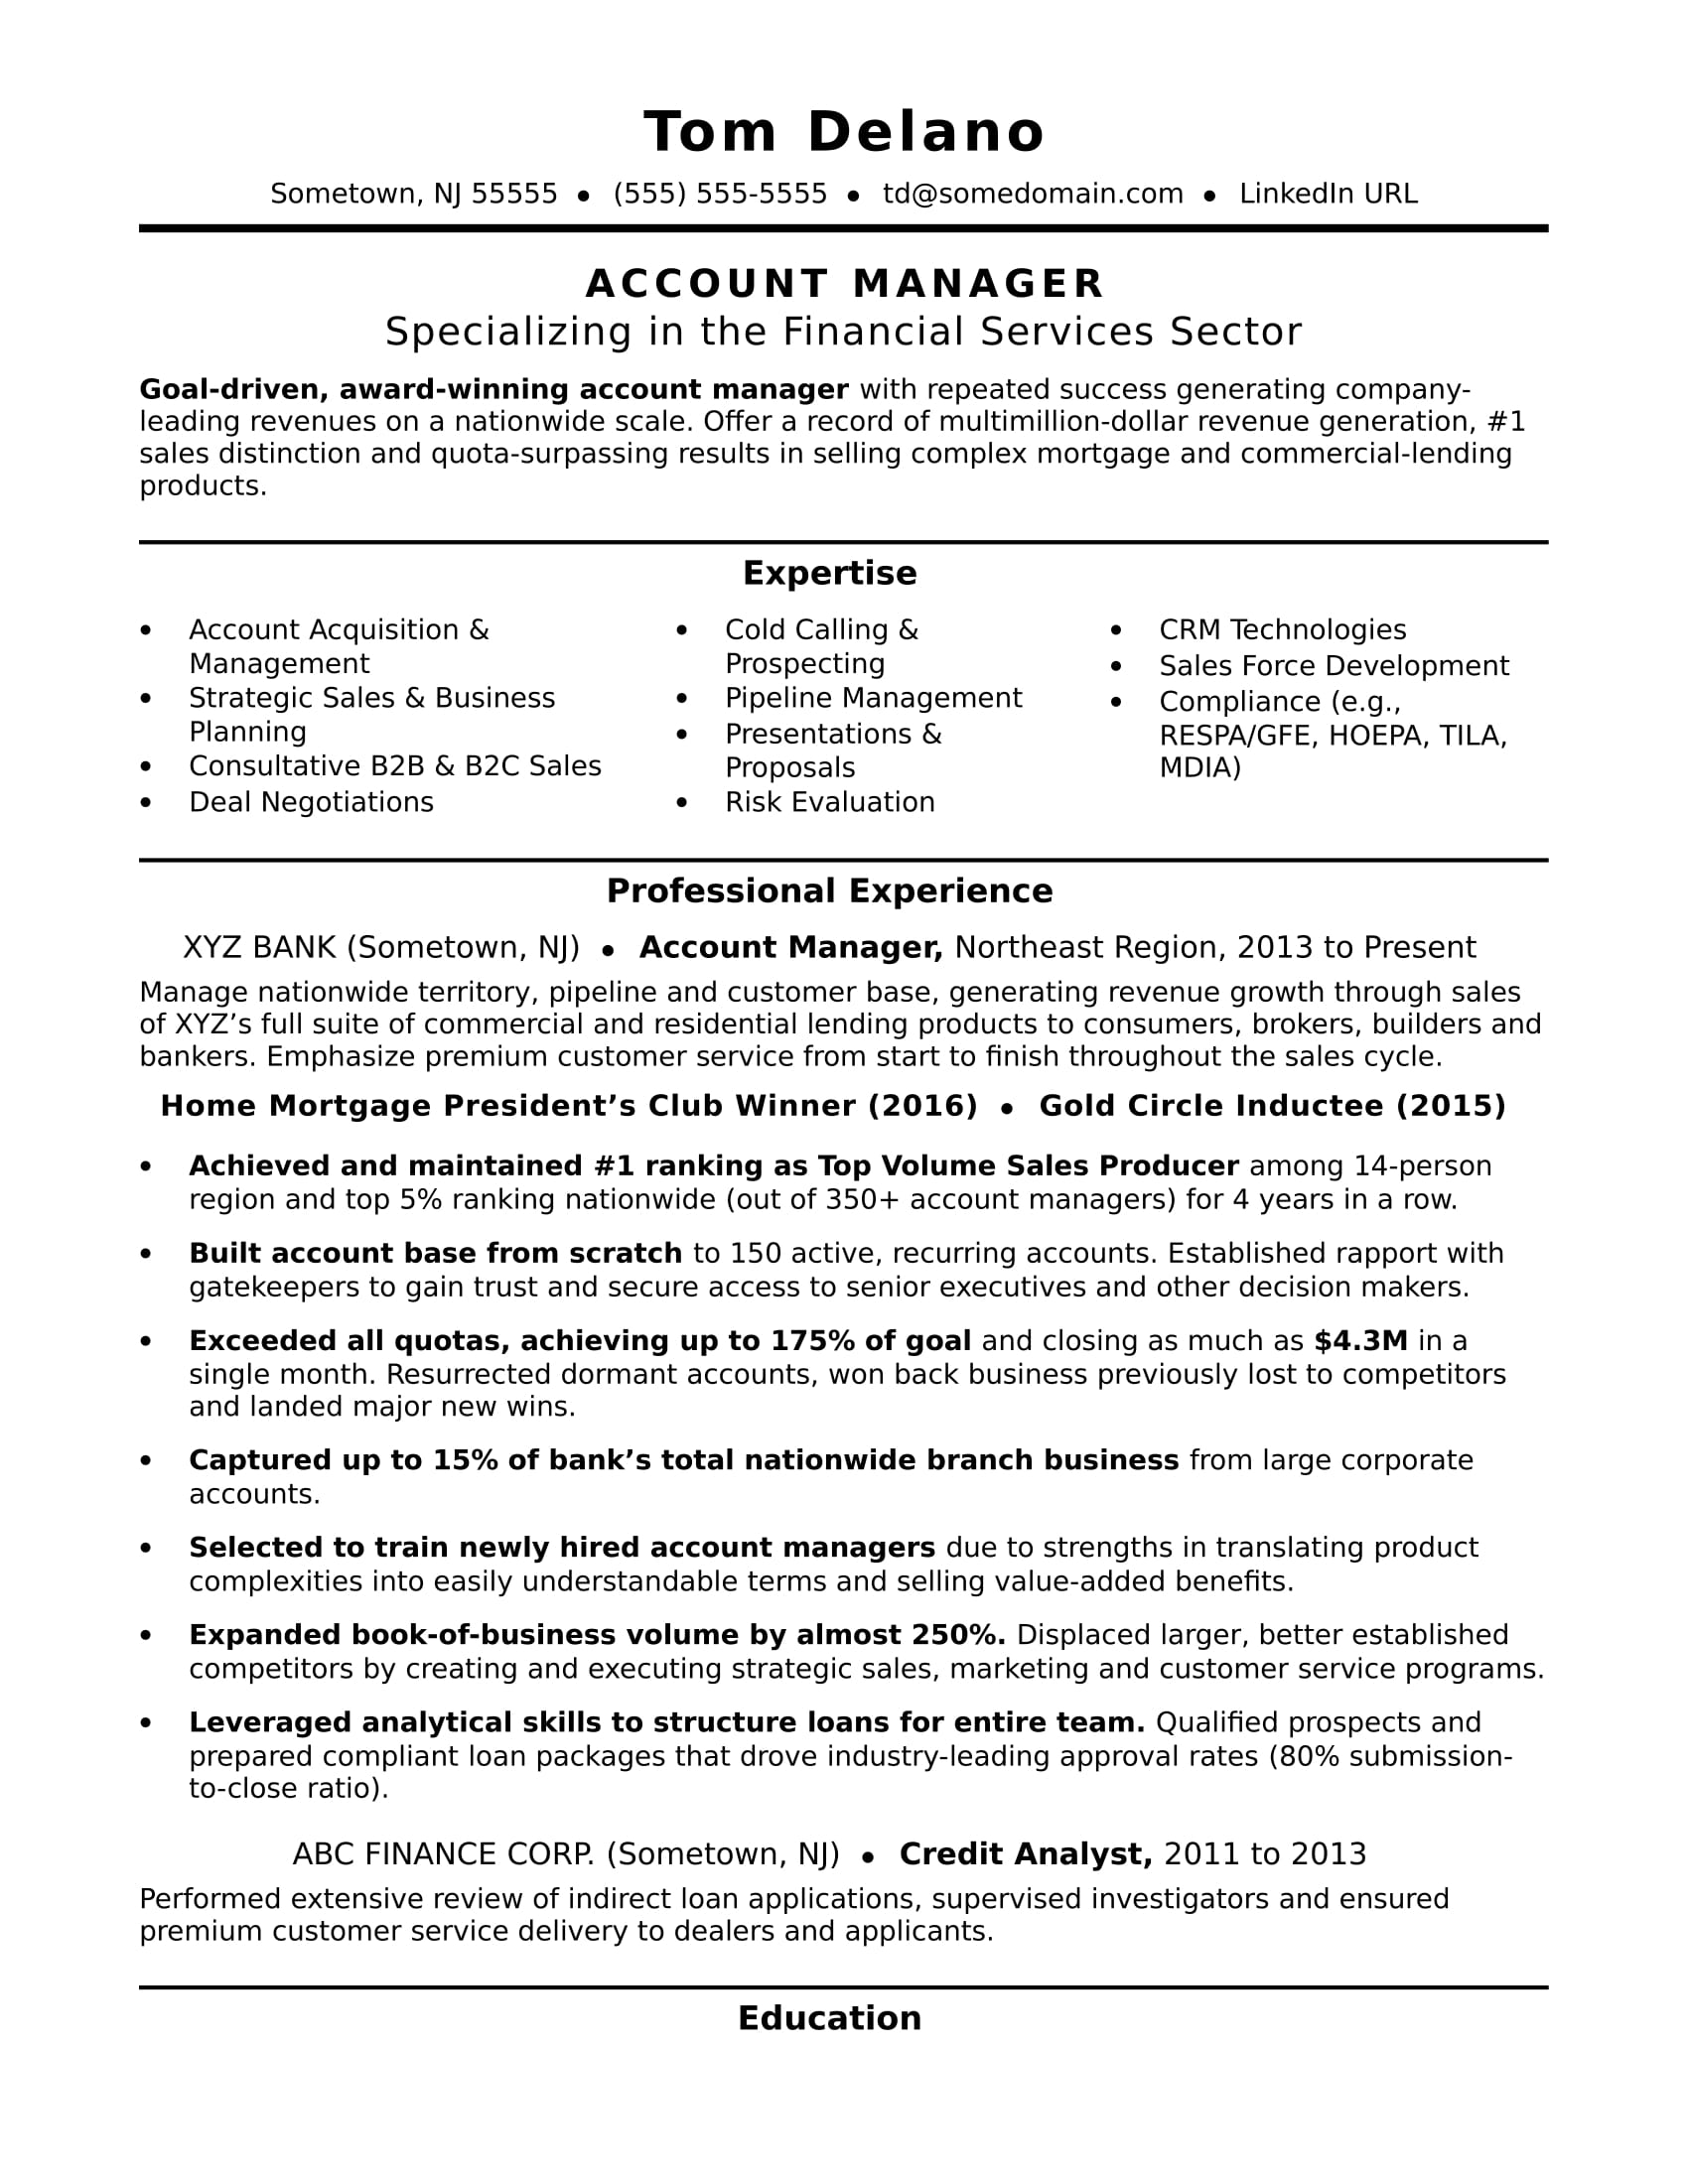 account manager resume sample monster professional executive colorful template experience Resume Professional Account Executive Resume